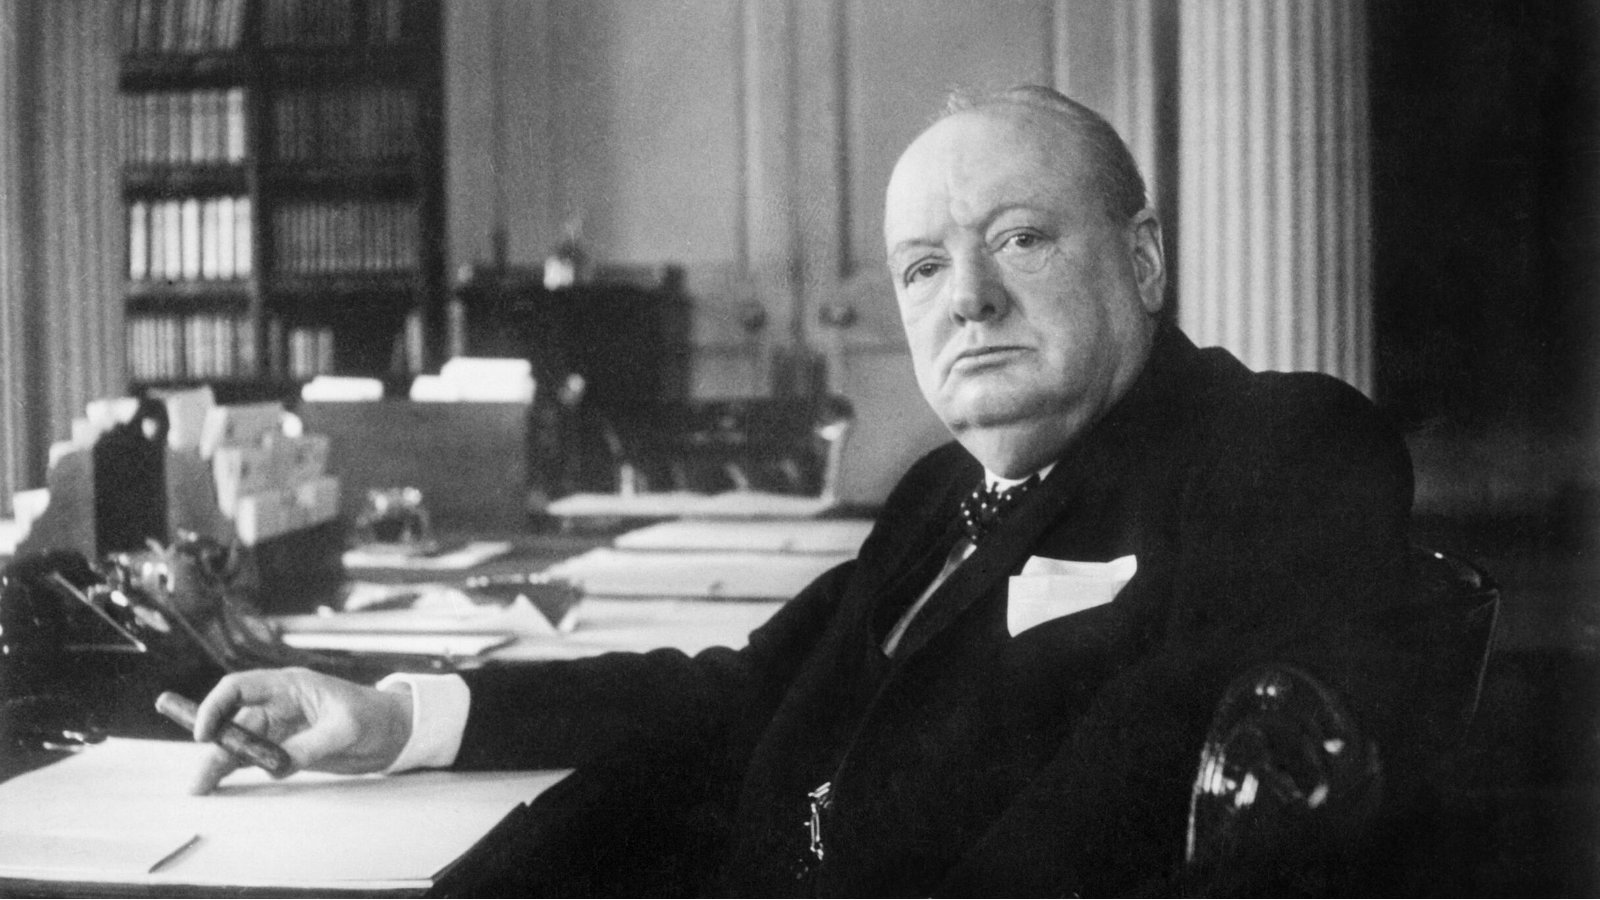 Why did Winston Churchill hate the Hindus and prefer the